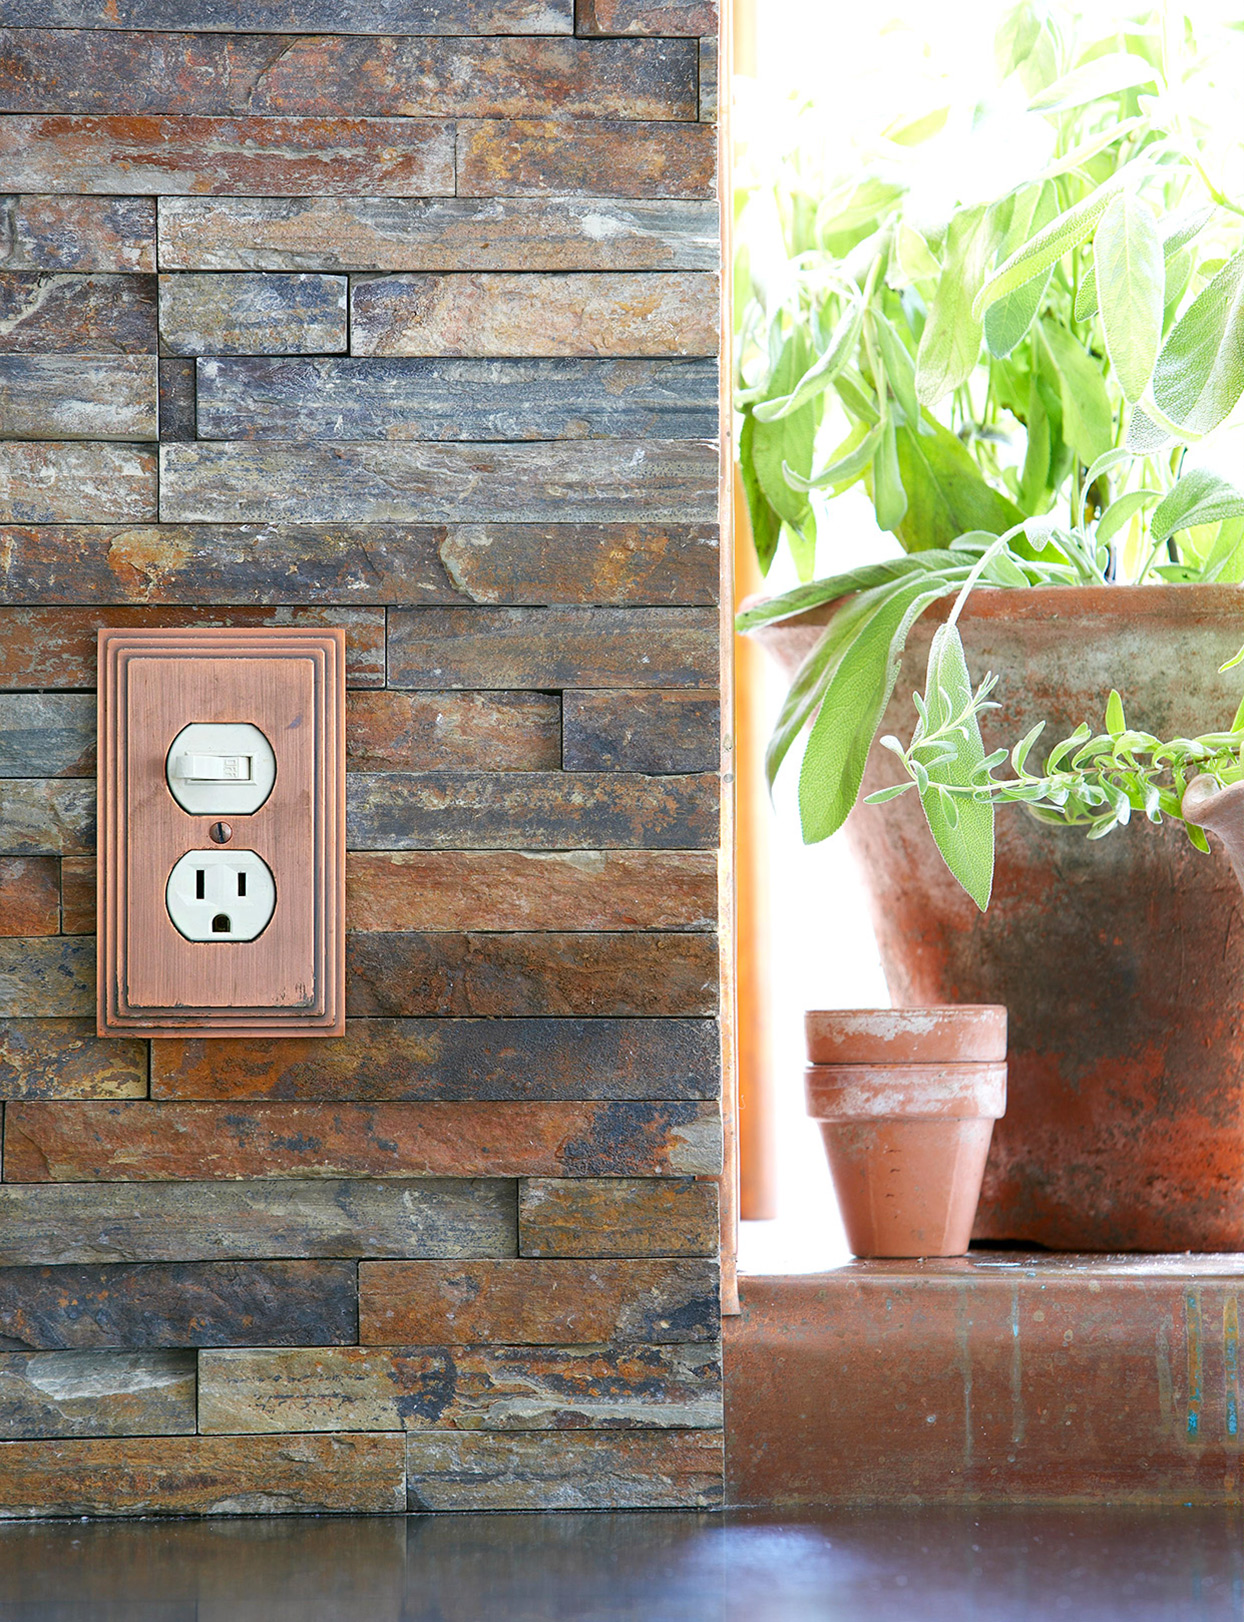 stone wall with switch